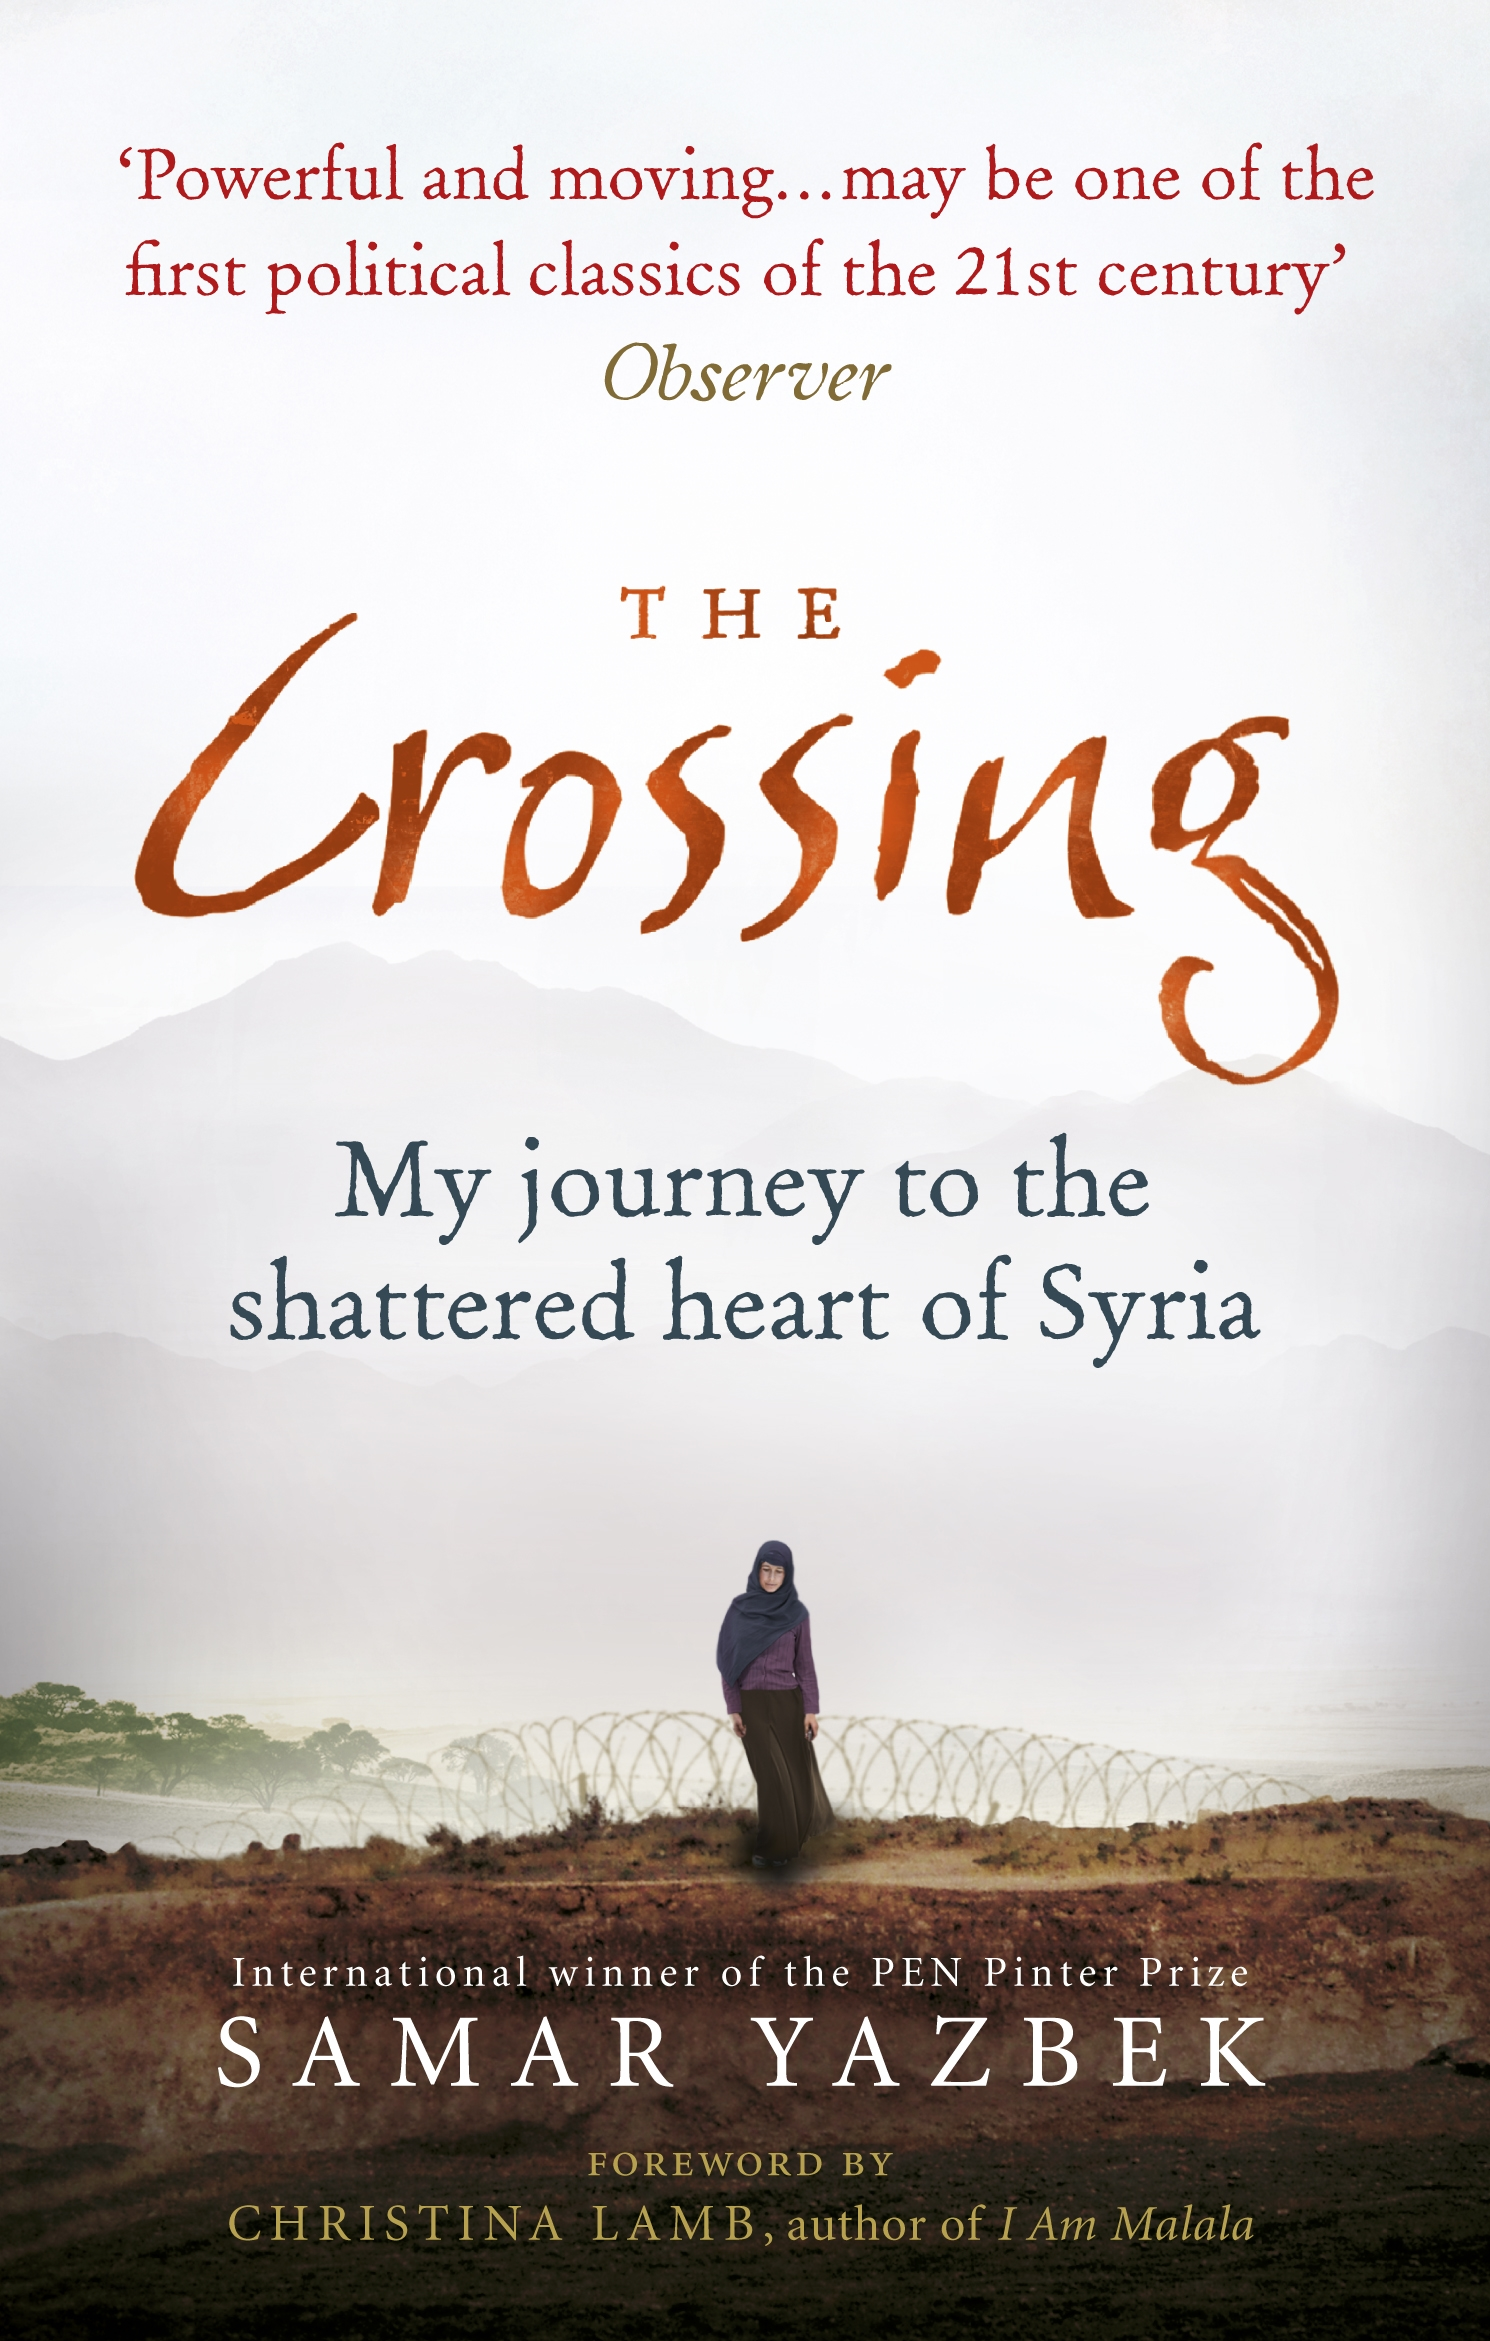 The Crossing - We have all seen images of Syria on the news. In this book, journalist Samar Yazbek travels from Paris where she is living in exile back to Syria on three separate occasions. It reads like an unending conveyor belt of death. Yazbek gives an insight into the daily lives of Syrians living in terrible conditions. Read it and have your heart softened to the Syrians living in our midst.